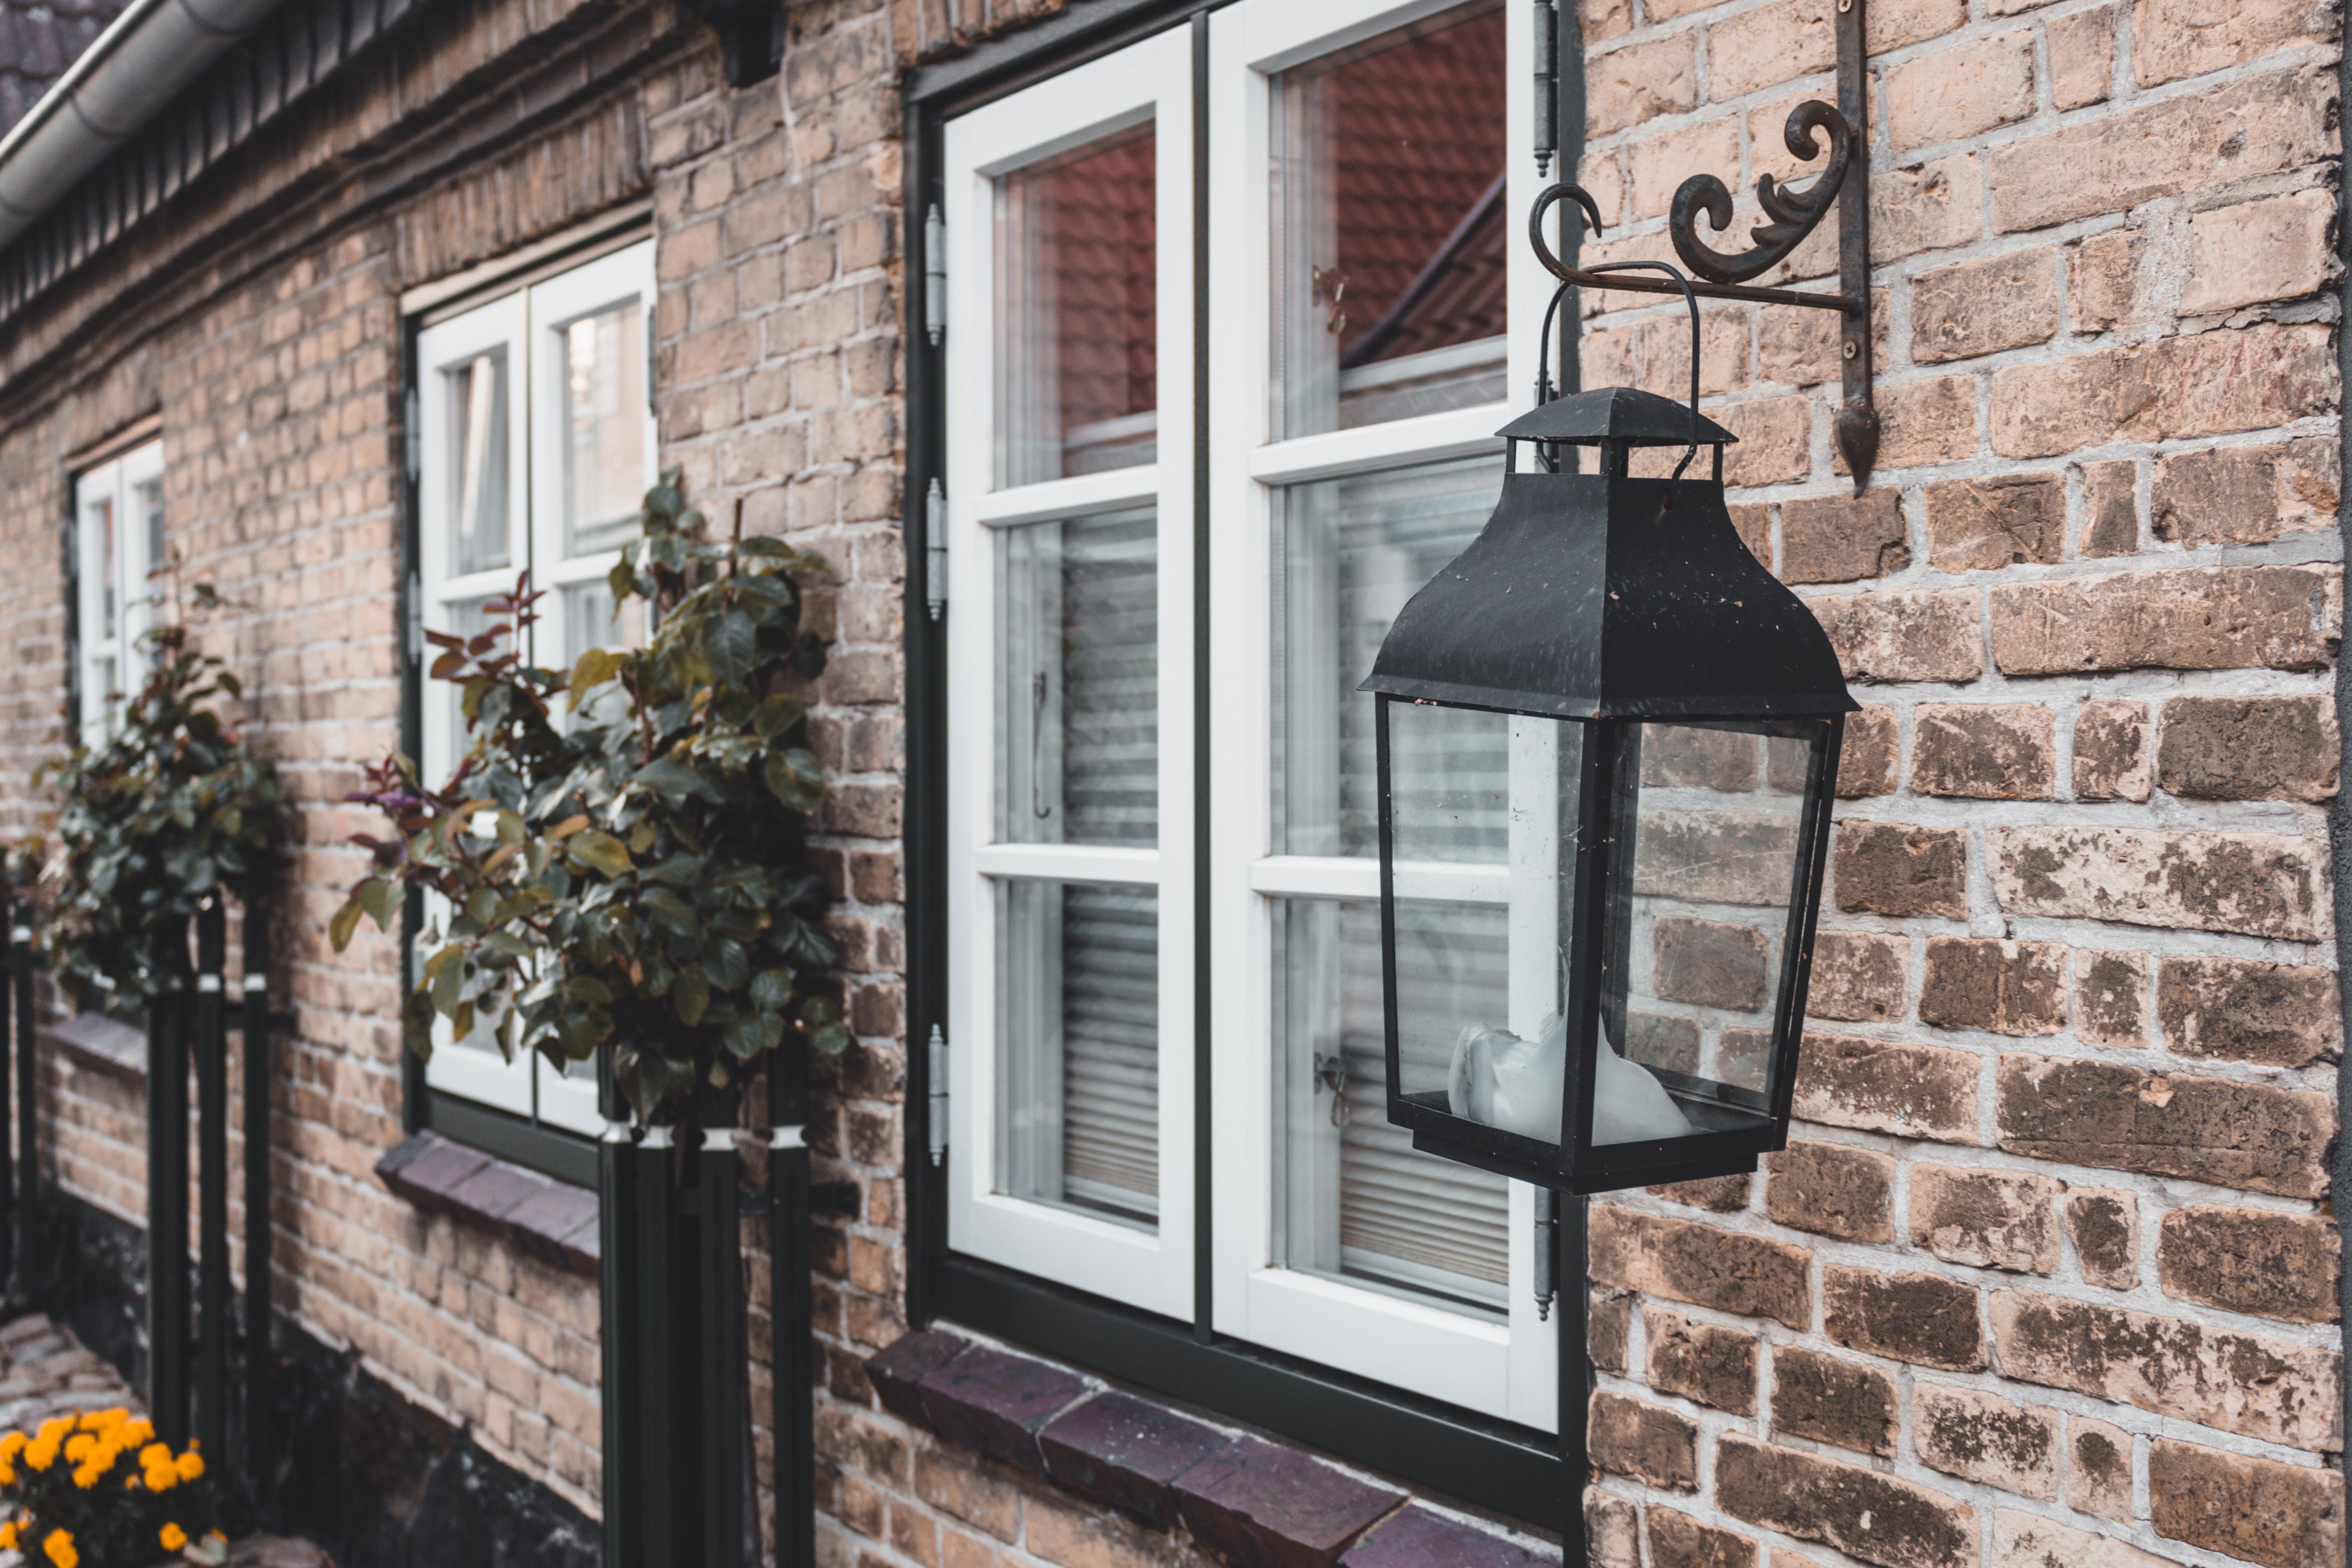 black outdoor sconce light on brown brick wall